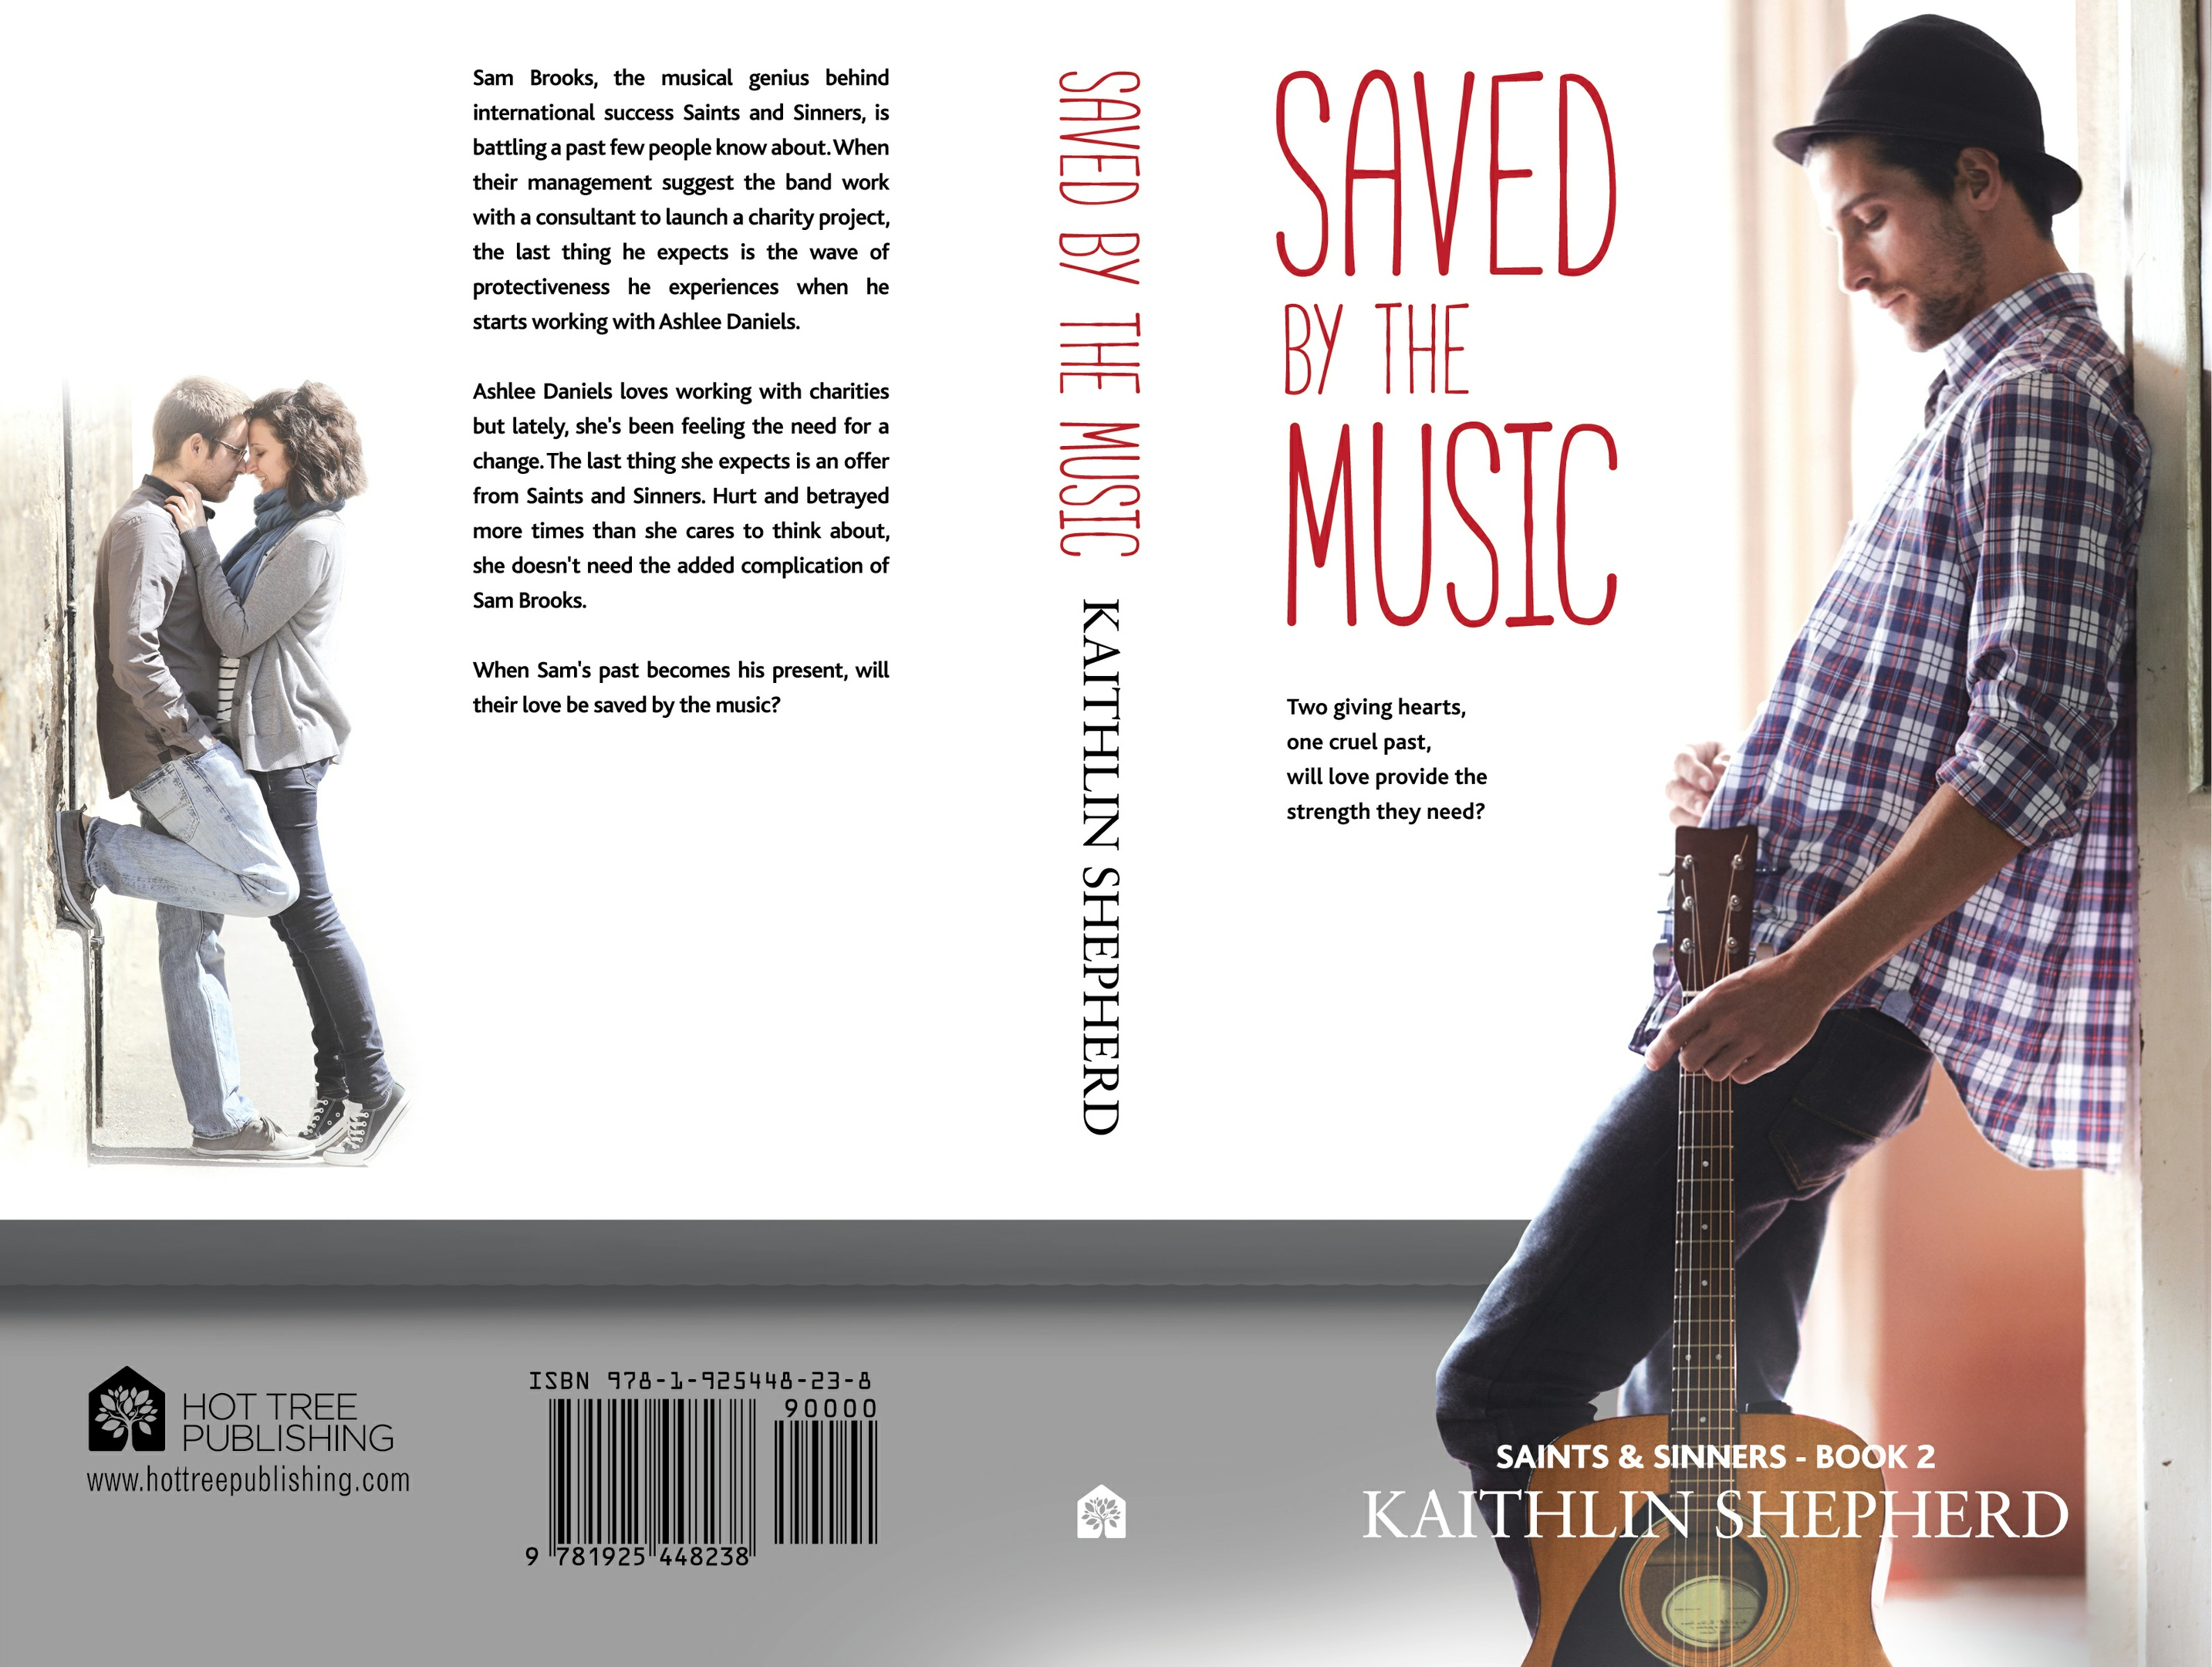 MOBI Saved by the Music by Kaithlin Shepherd